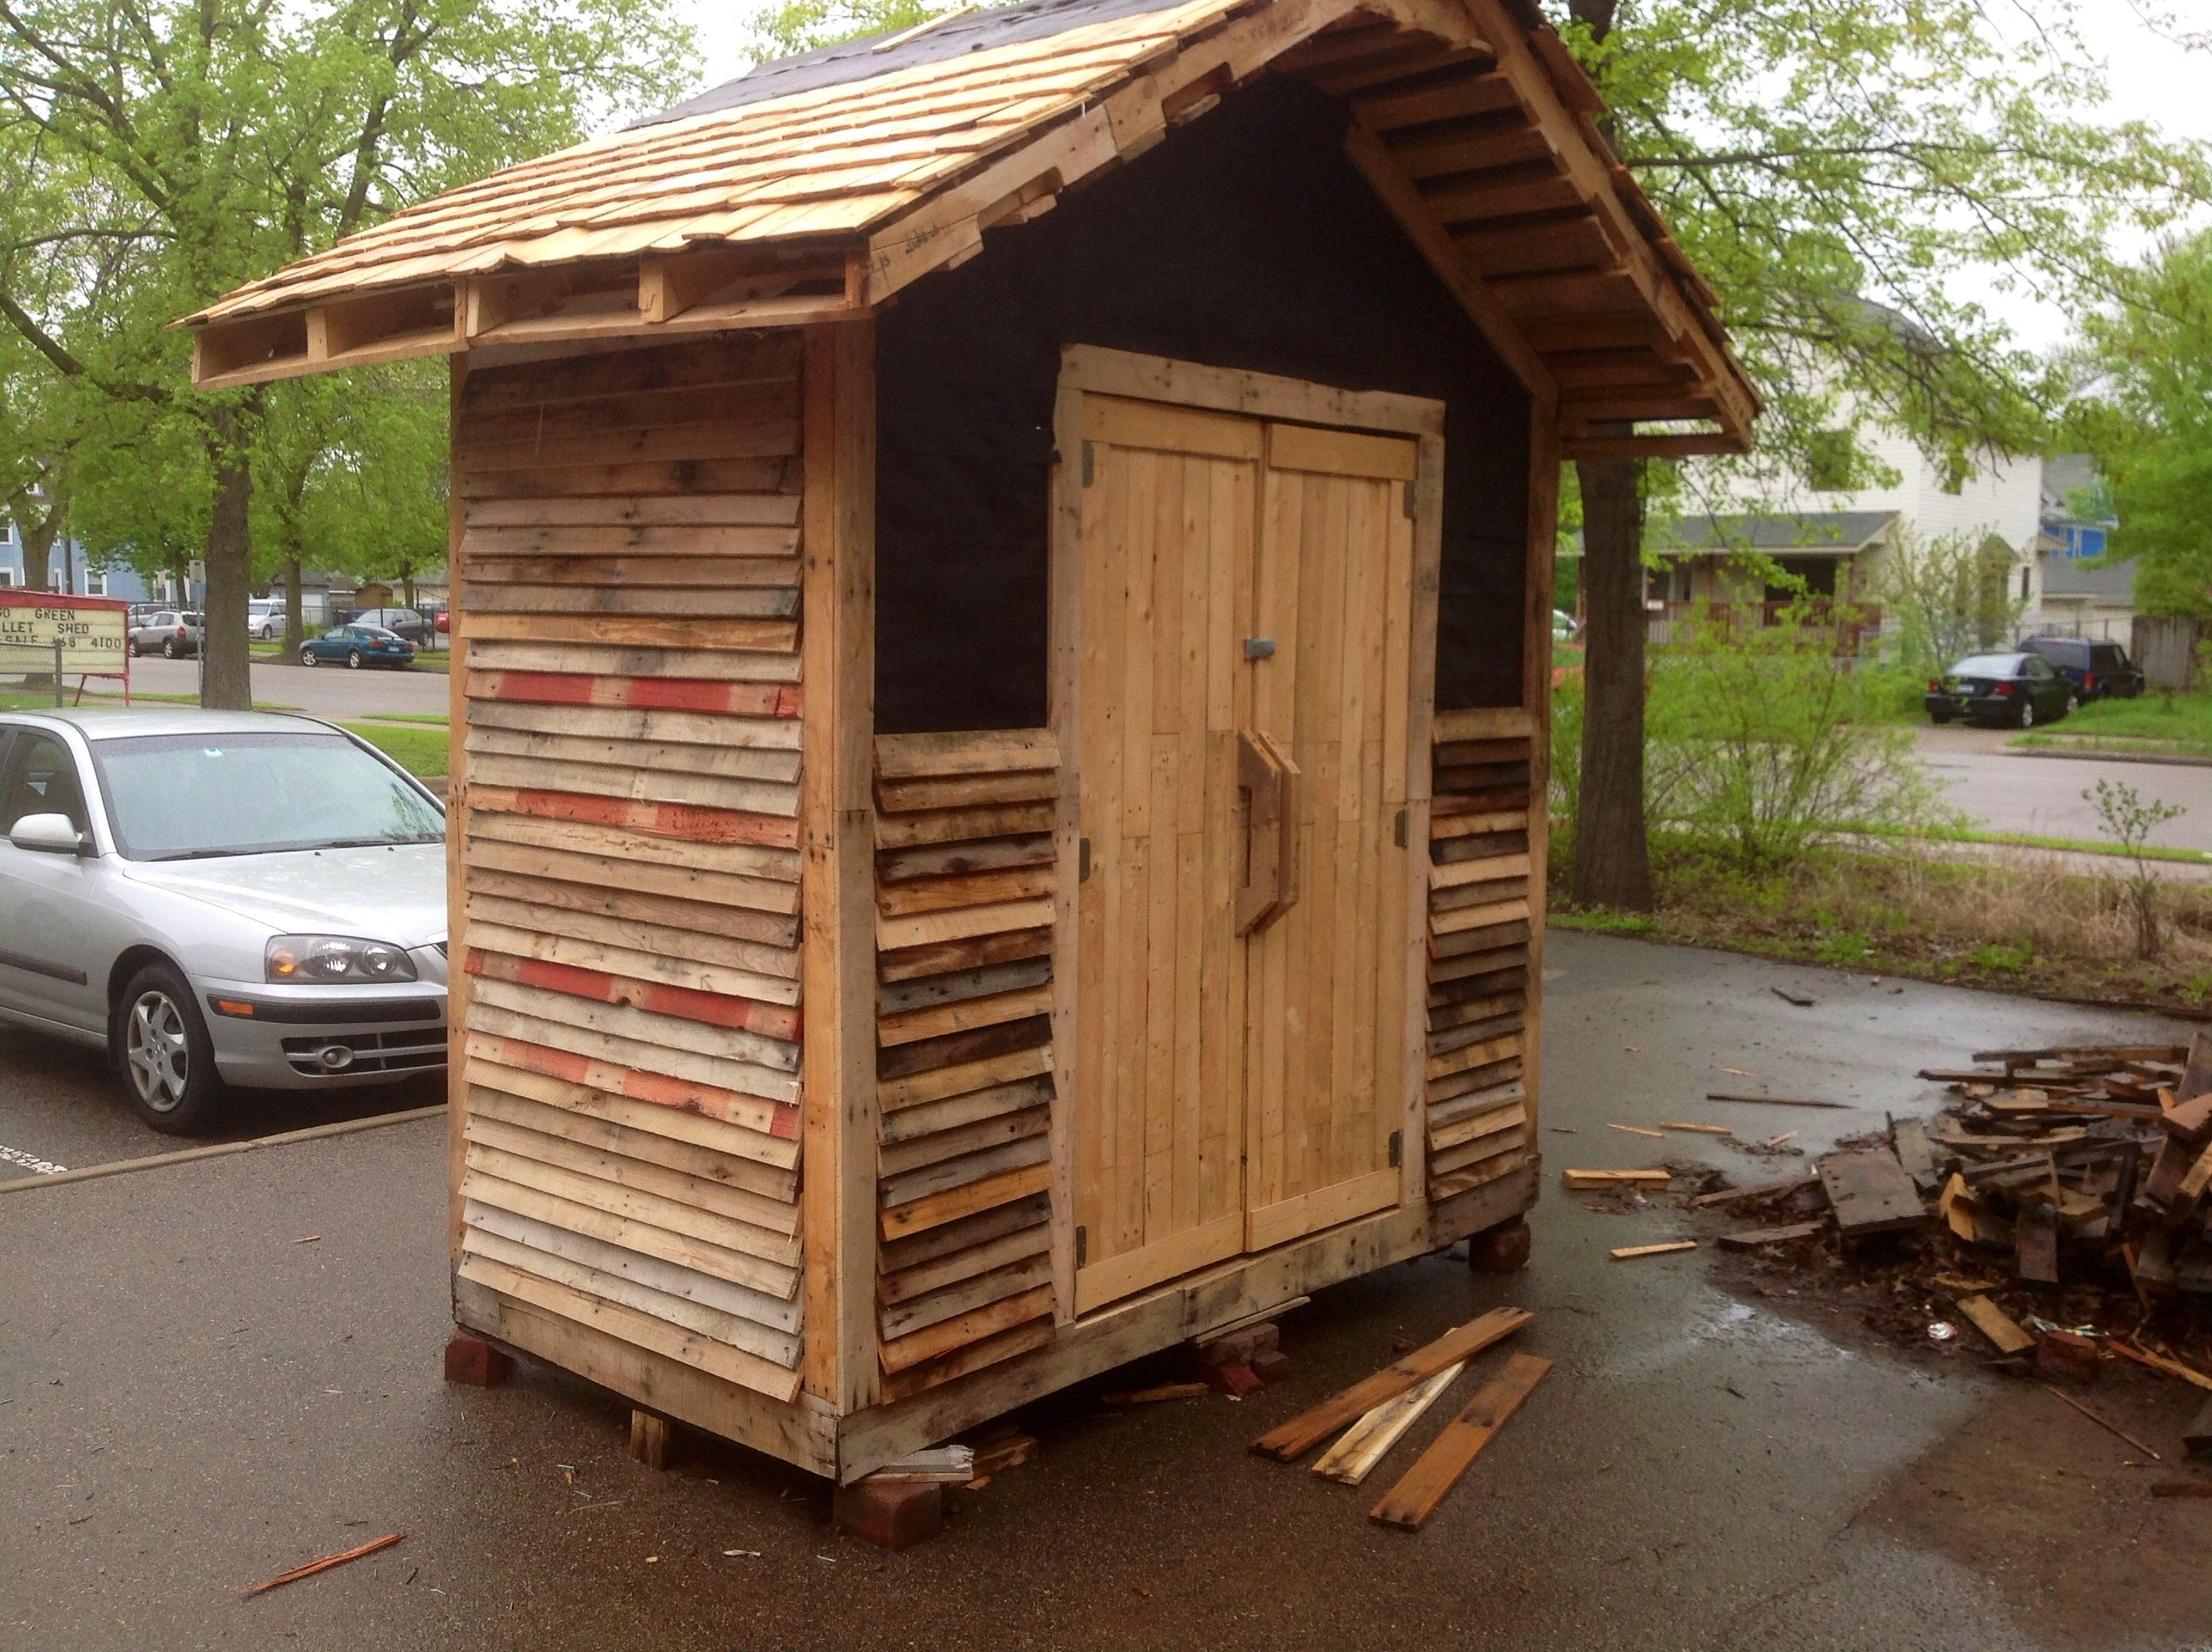 unusual cheap cabin ideas. Starting to look like a cool cheap shed for under 50 dollars  That should